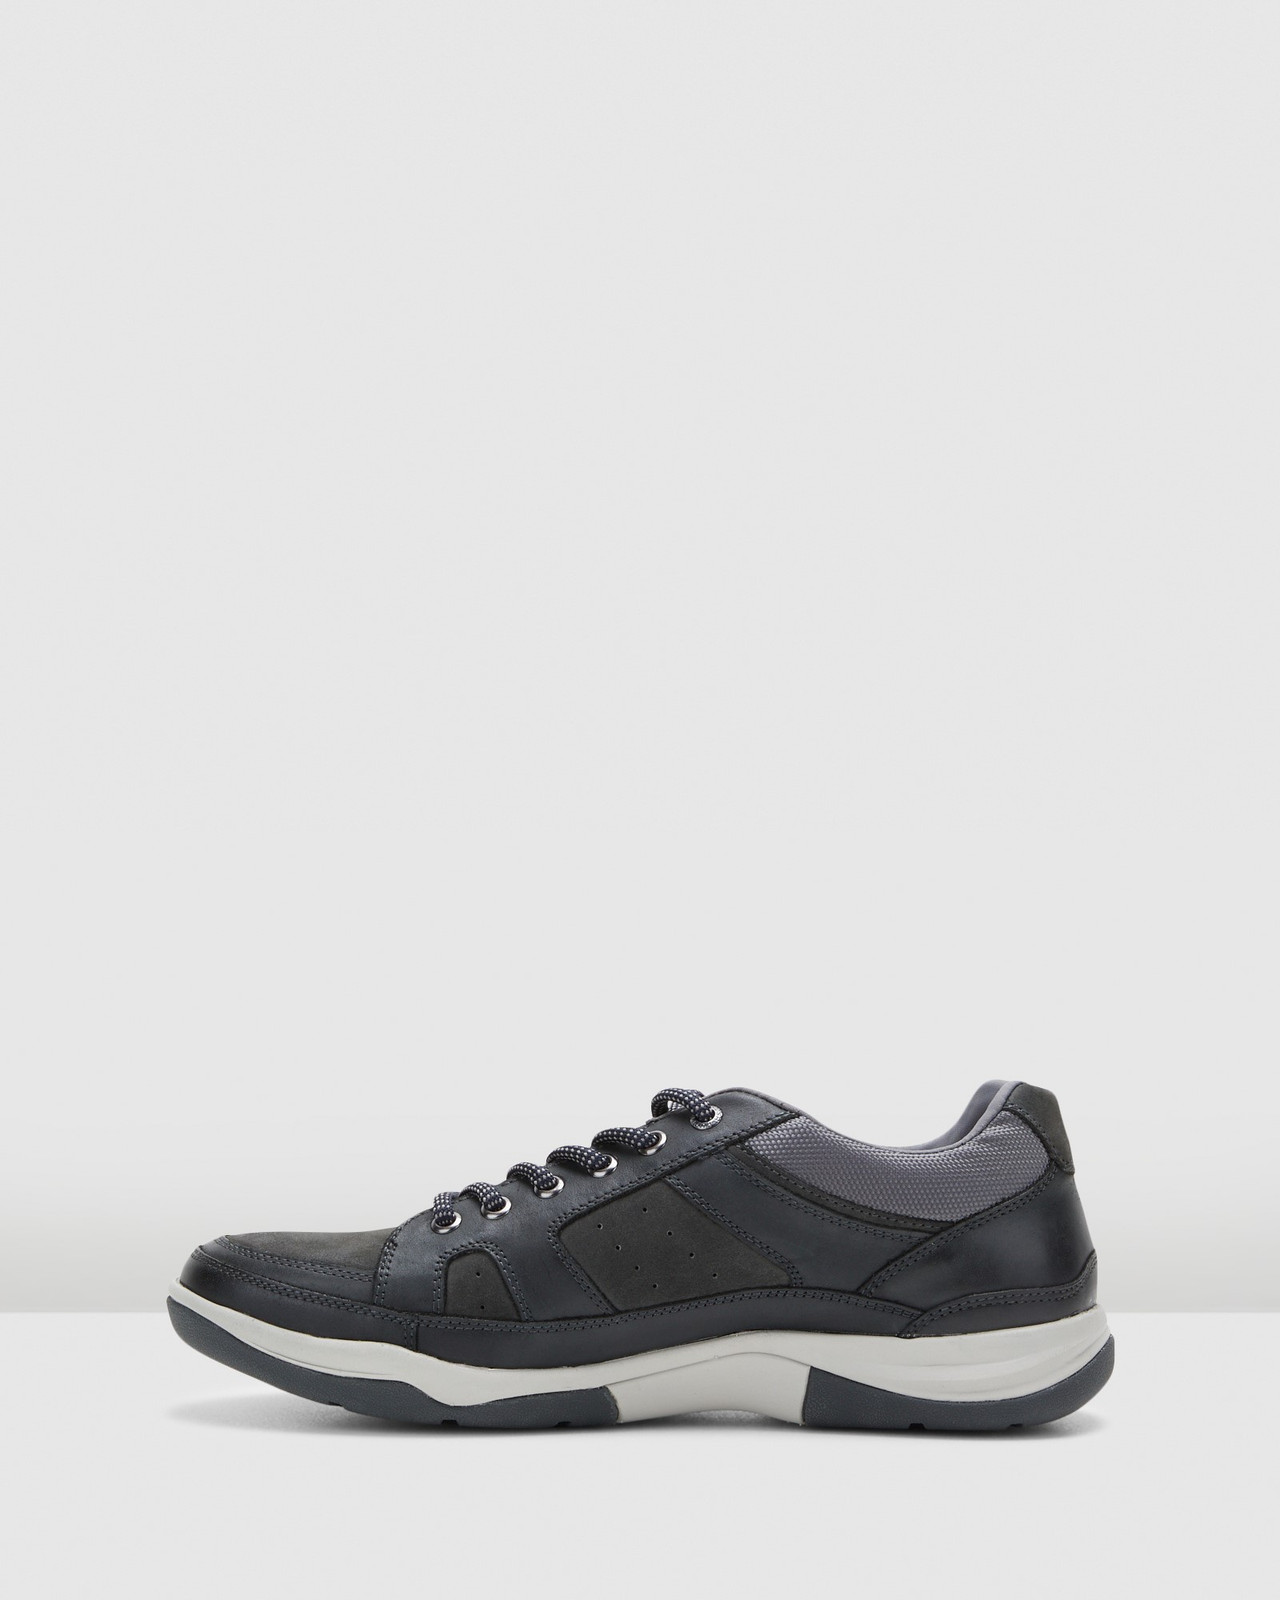 Hush Puppies  GRIFFIN Charcoal/Grey